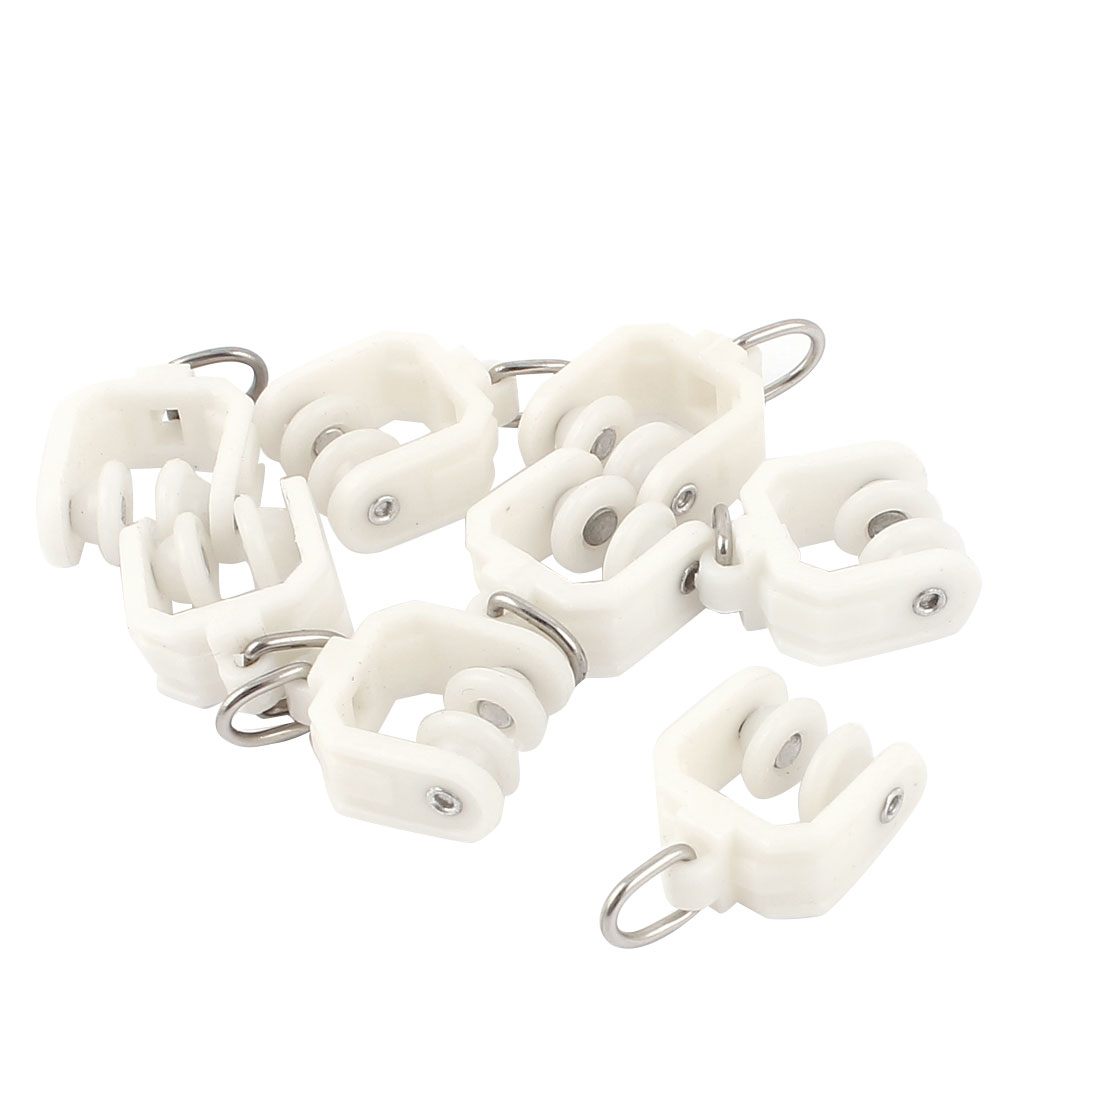 8pcs Plastic 9mm Dia Wheel Swivel Eye Ring Curtain Track Rail Rollers White